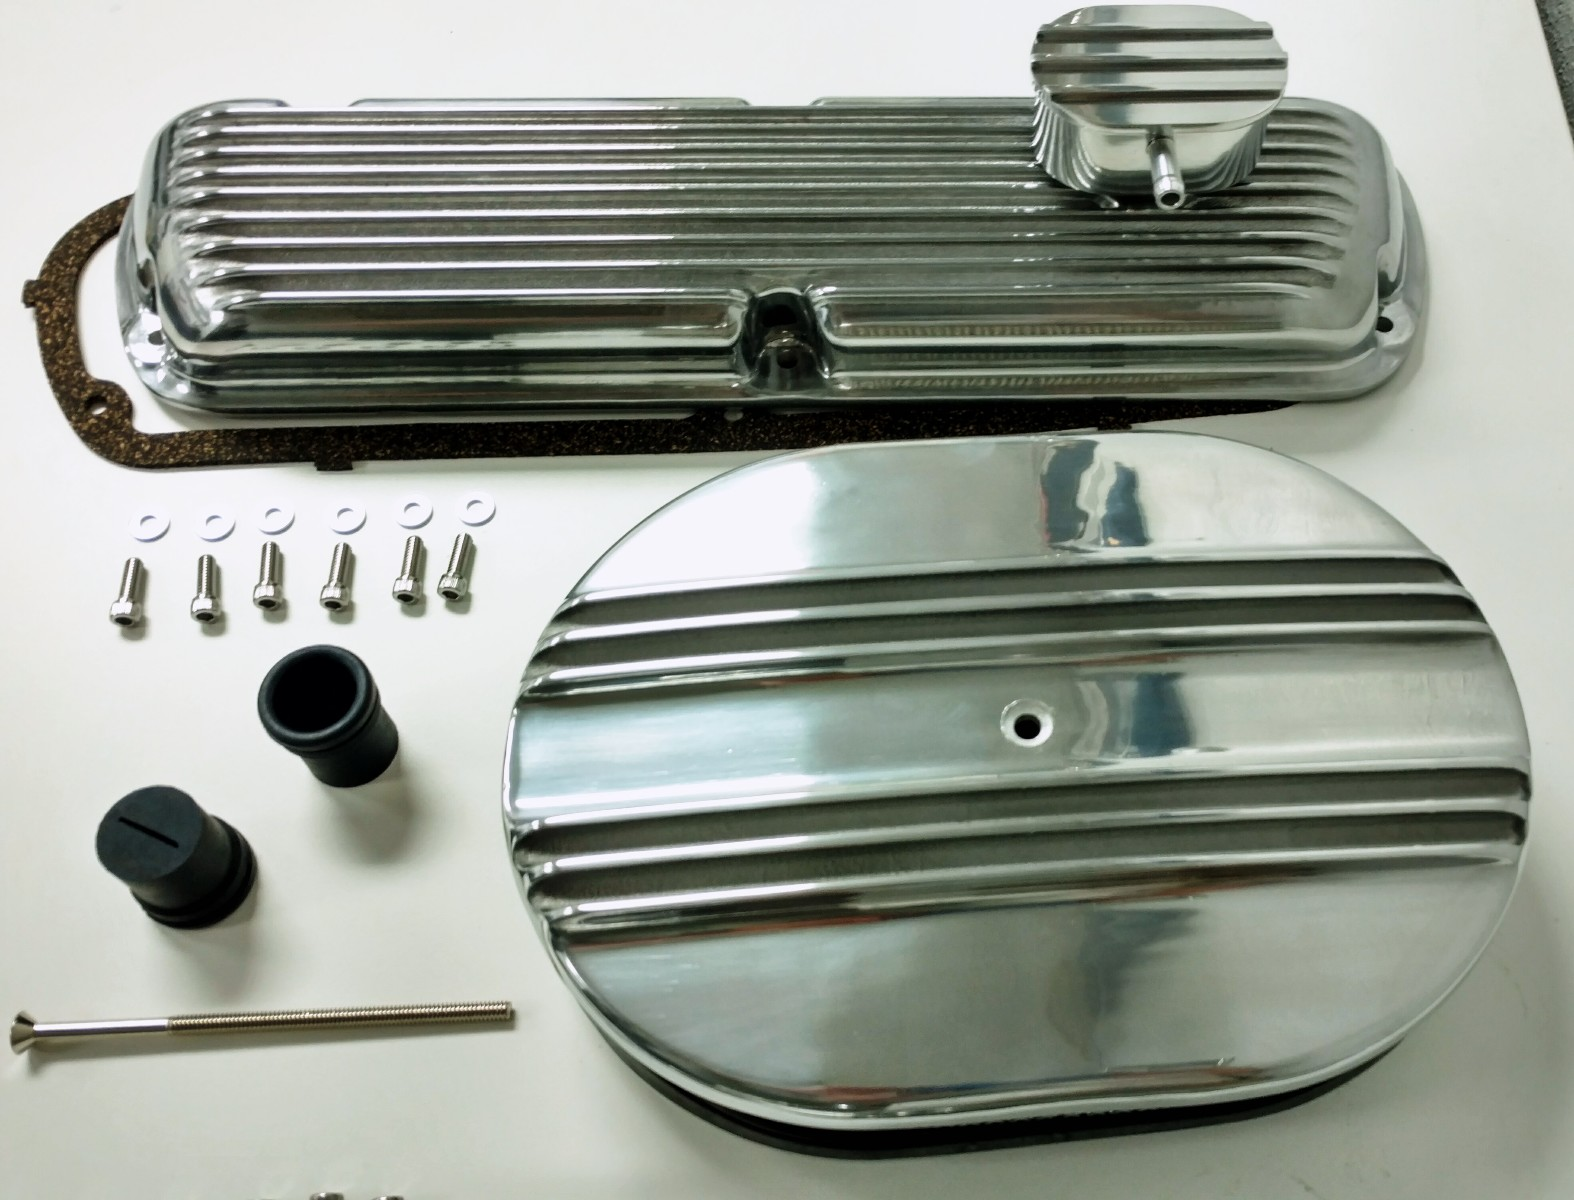 Sb Ford Finned Aluminum Valve Cover W Air Cleaner Kit Sbf V8 260 302 Wiring Harness Jeep 289